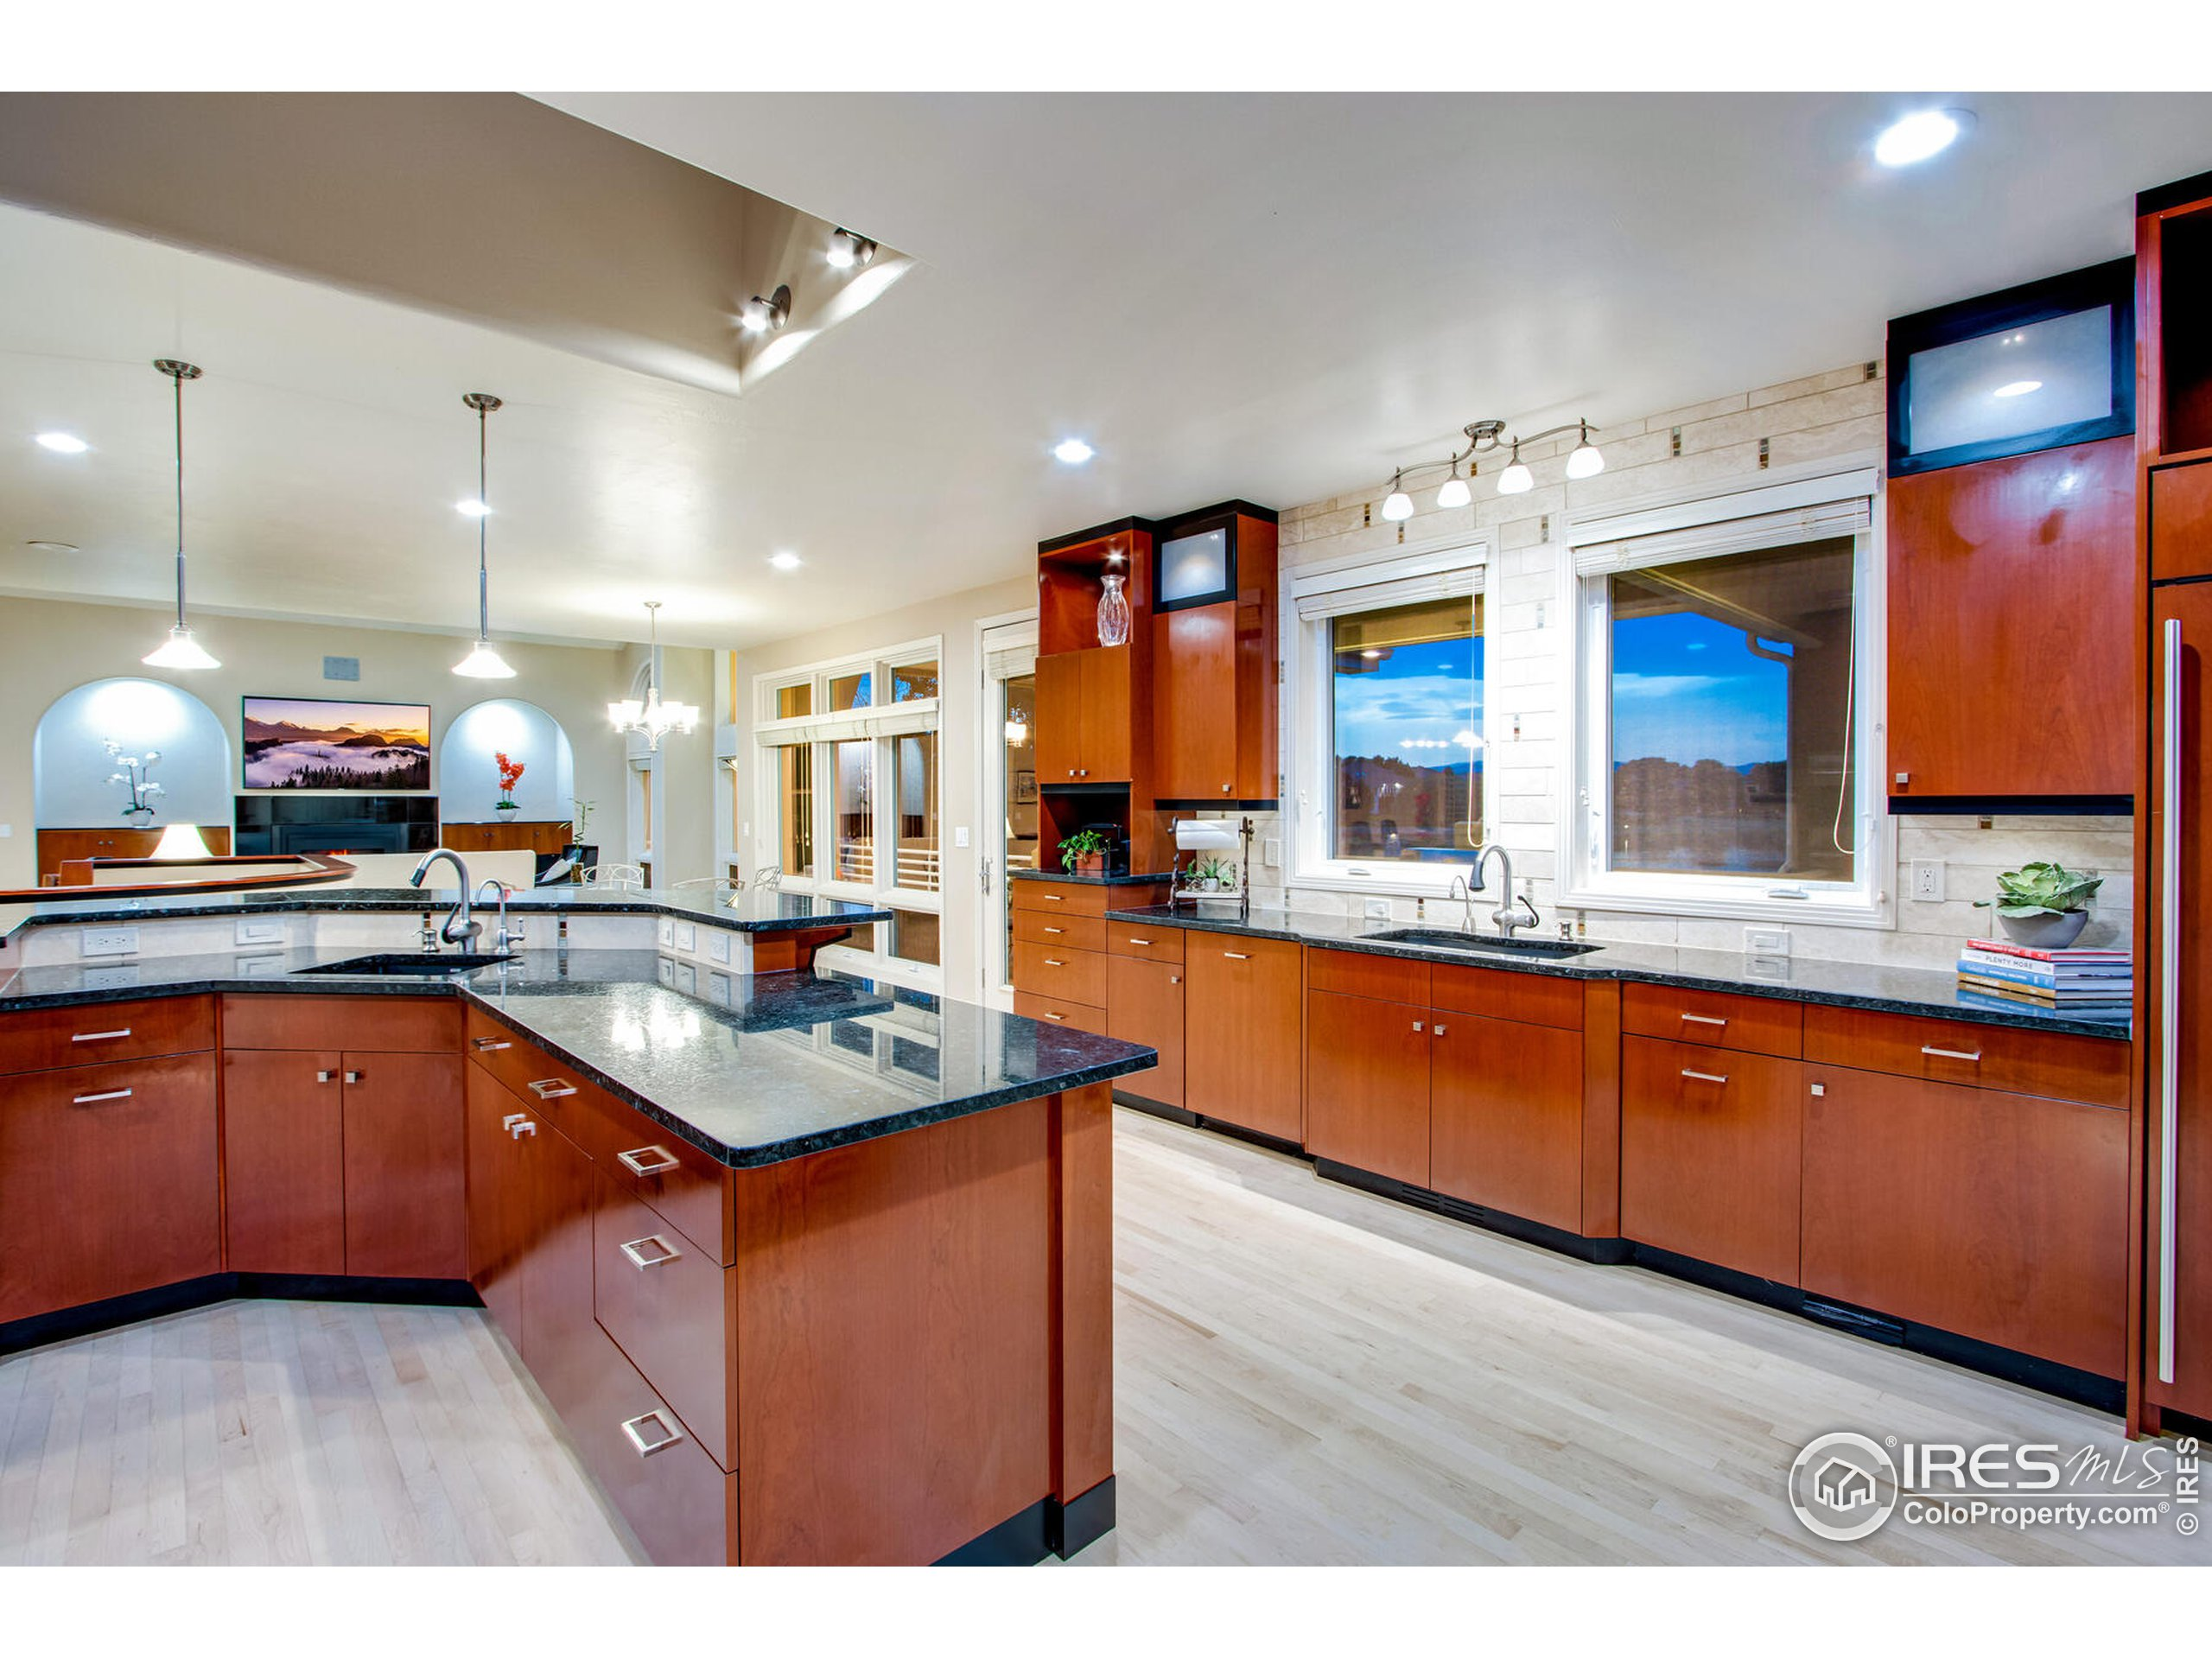 Full Service Kitchen provides adequate floor & counter space for entertaining, while allowing the Executive Chef plenty of room to perform his/her magic